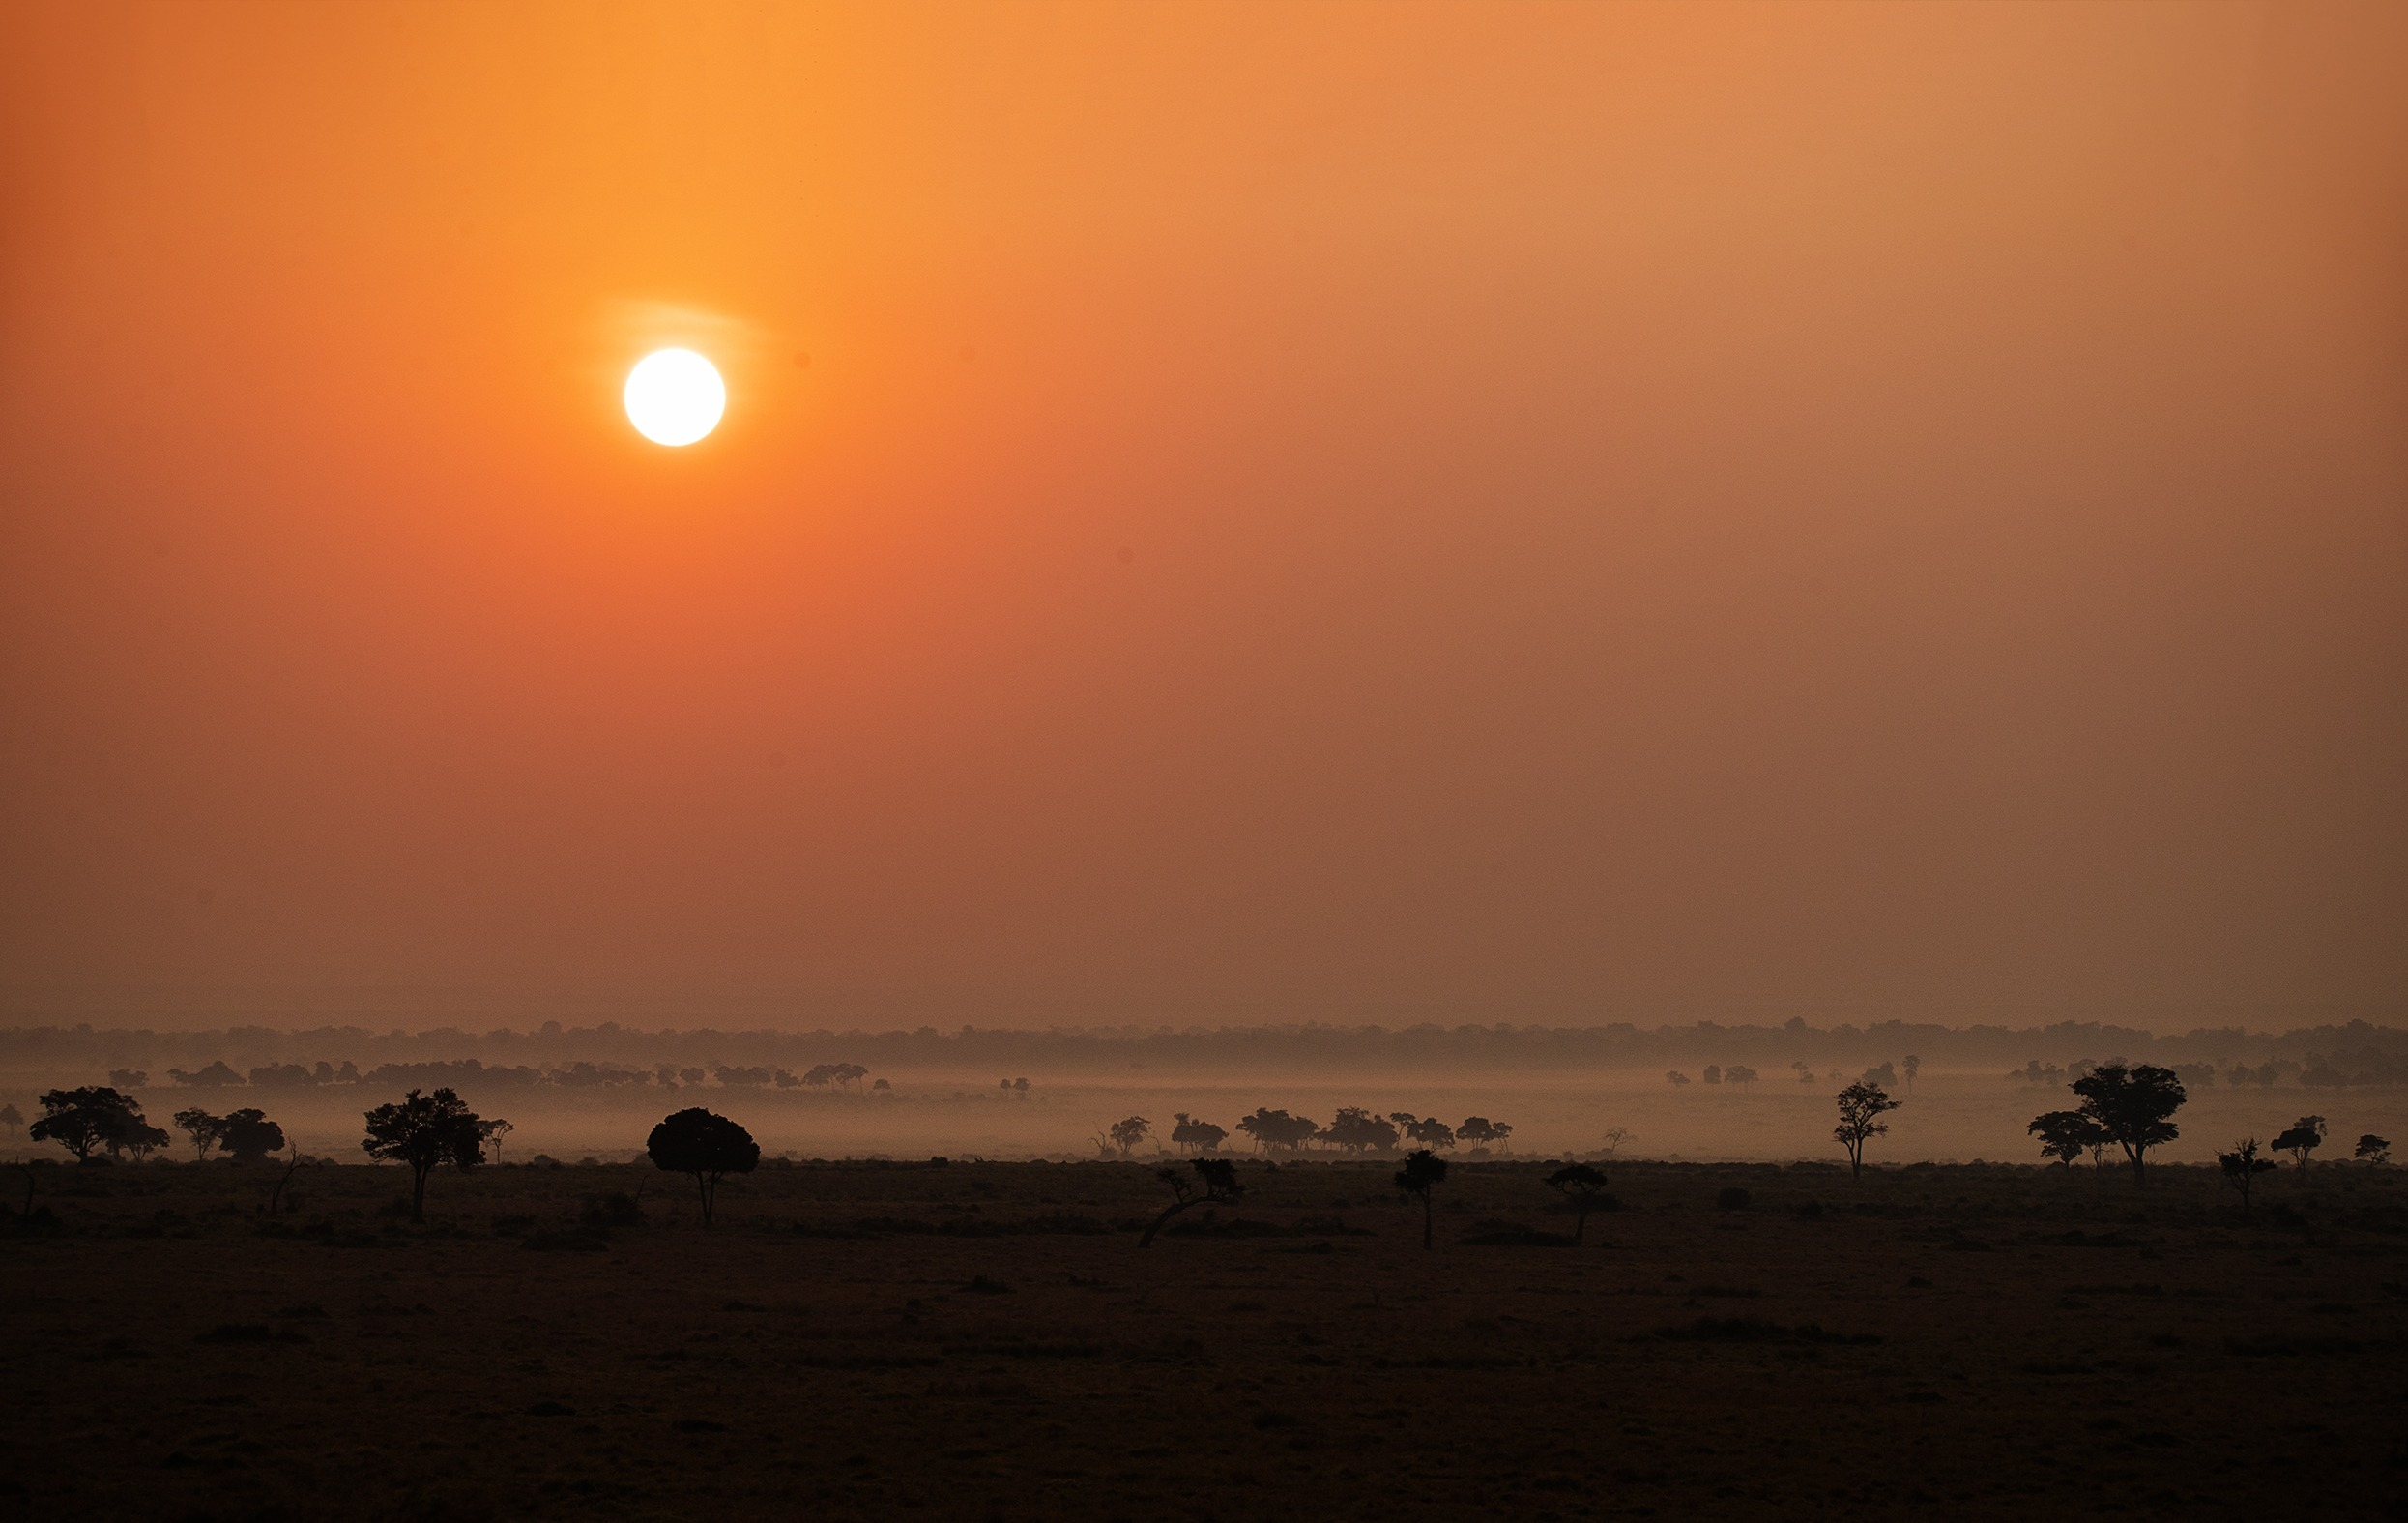 Mist as Sun rises in Maasai Mara